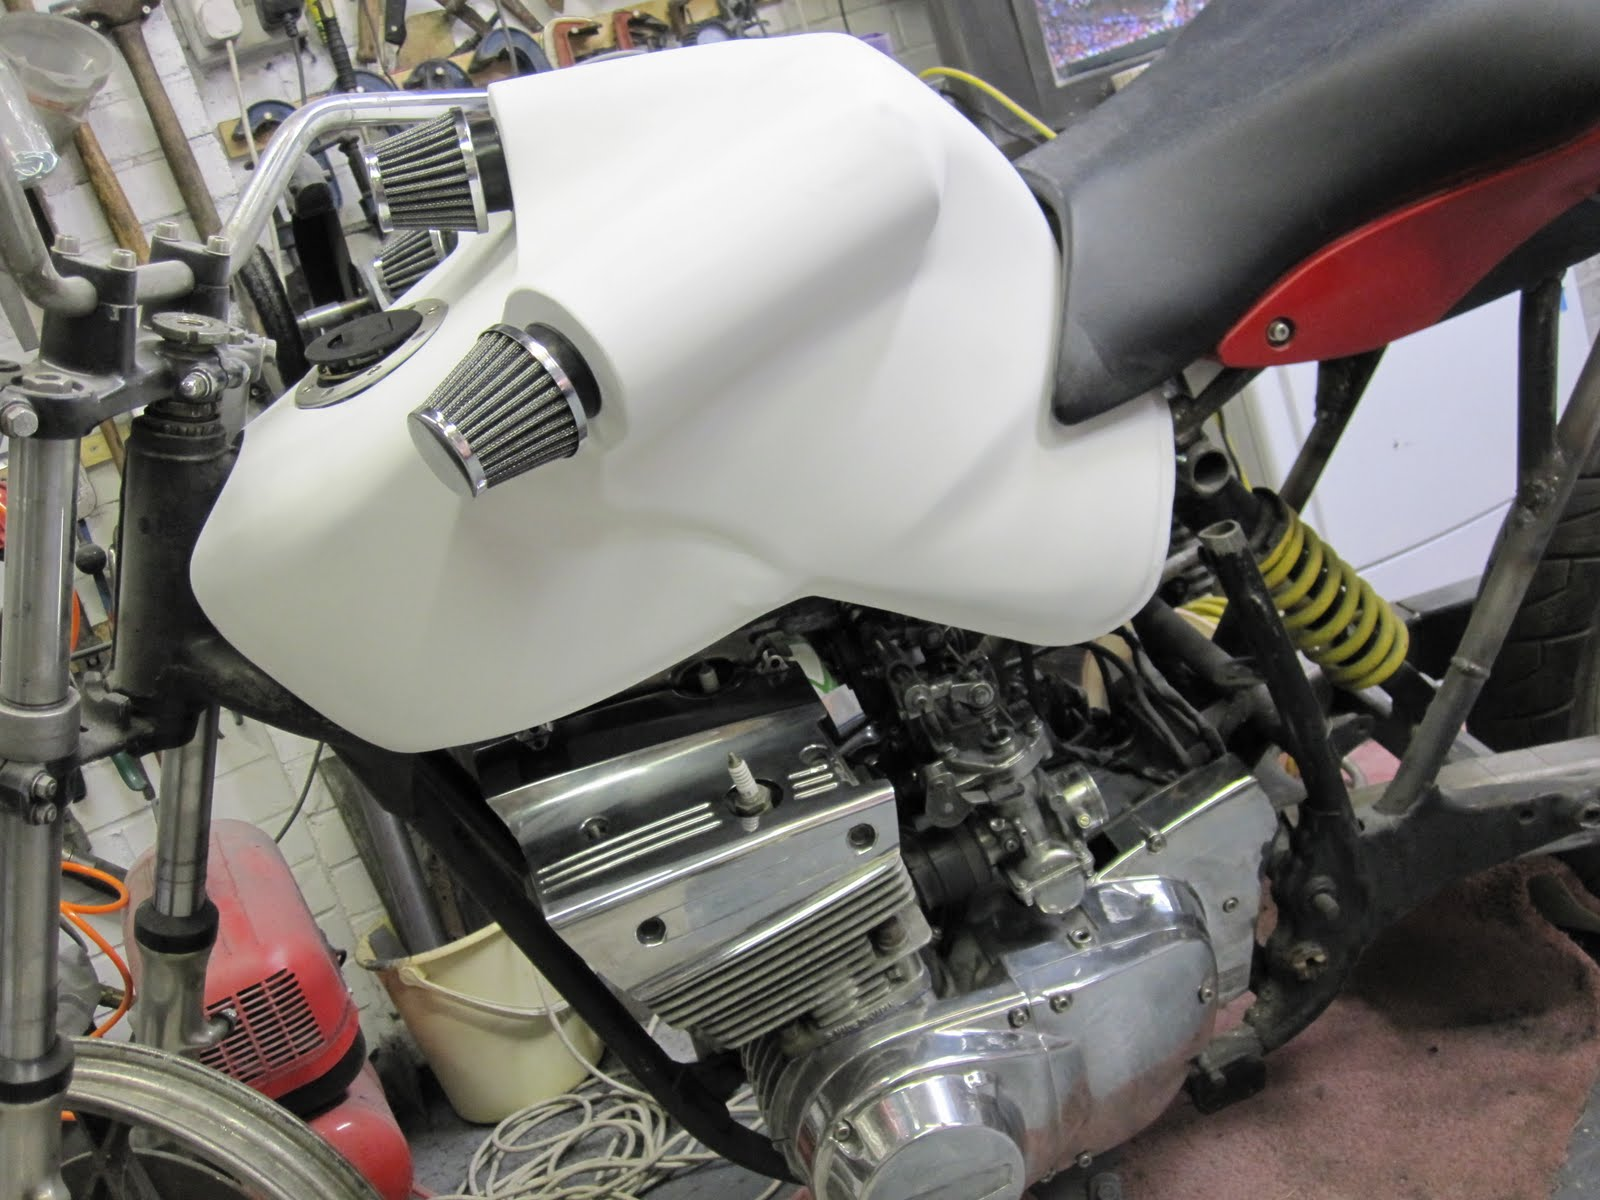 Crazy tank with air intakes to be ducted into carbs